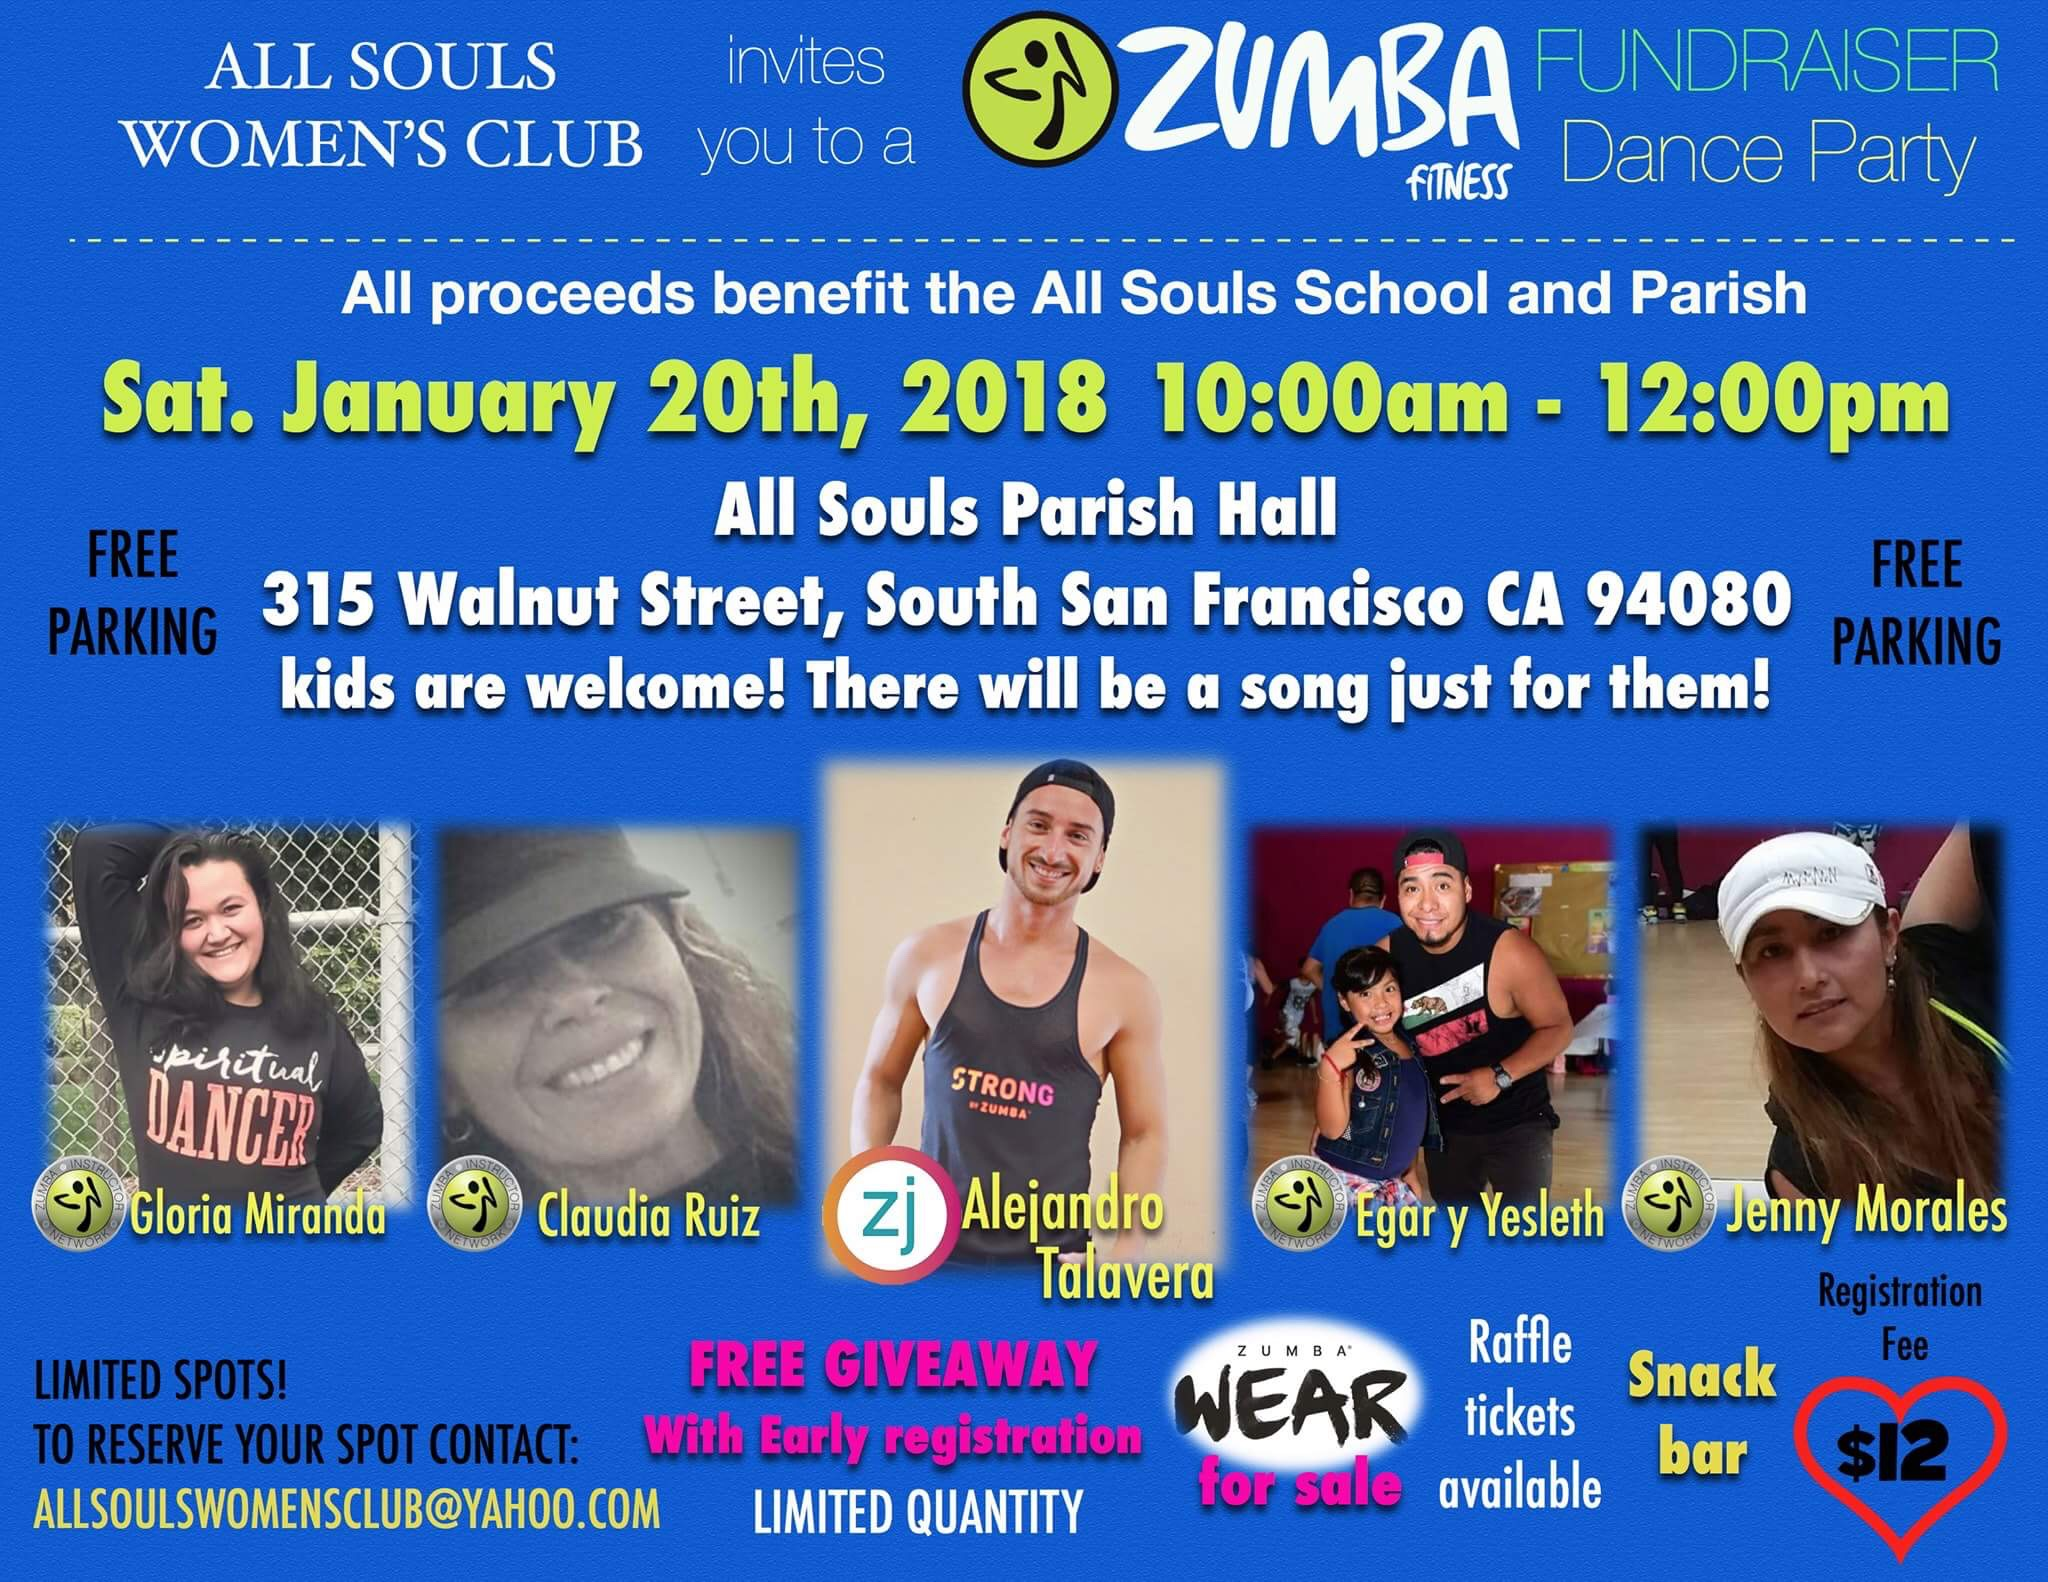 All Souls Women's Club Zumba Fundraiser Set For Saturday January 20th